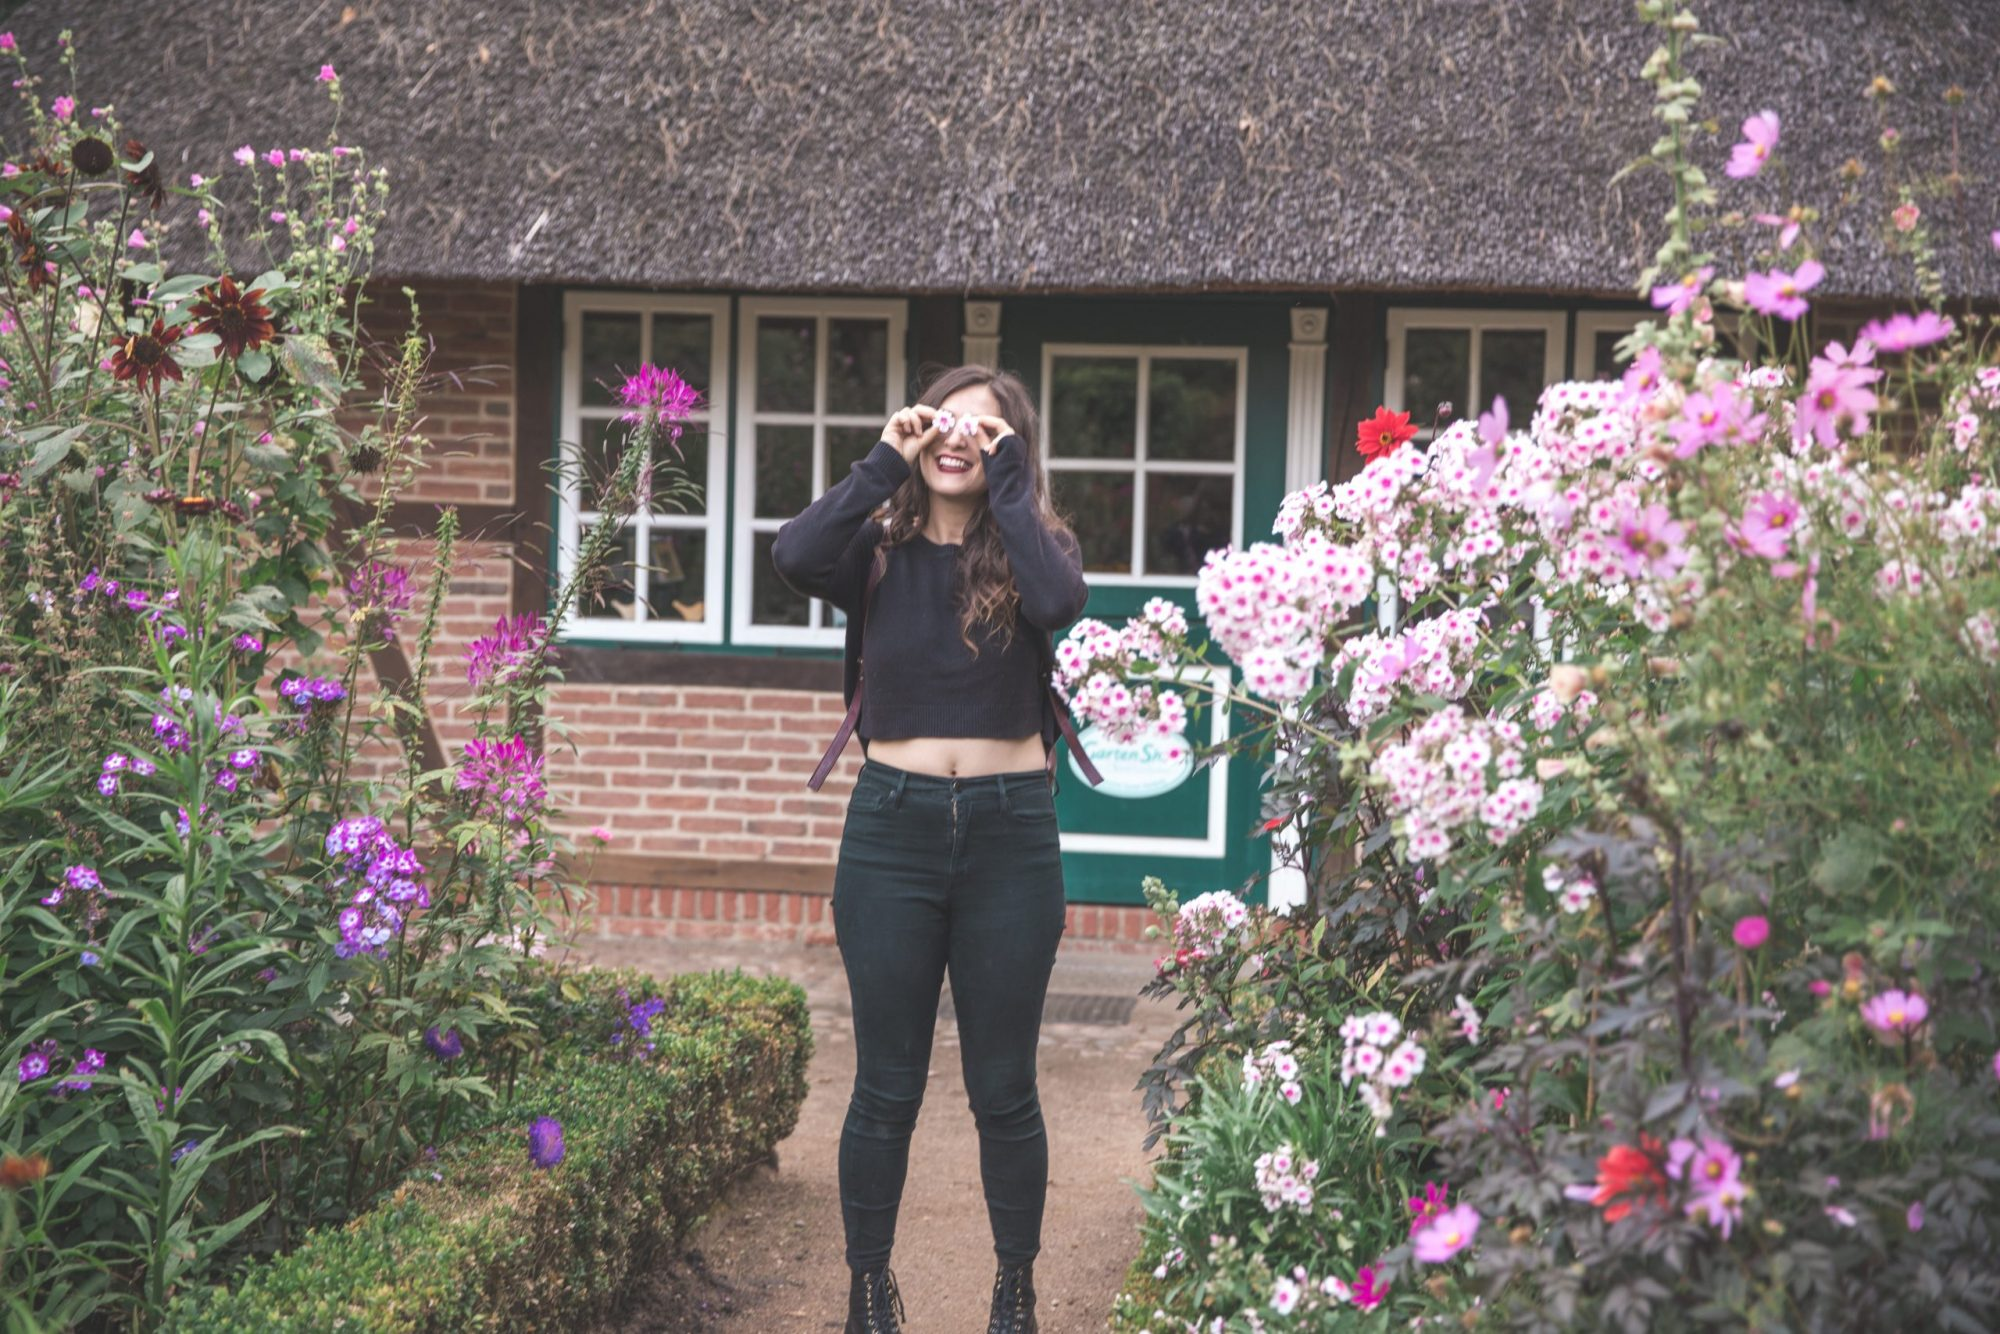 Kelsey holding flowers up to her eyes in front of a brick building surrounded by flowers in The Loki Schmidt Botanical Gardens in Hamburg, Germany